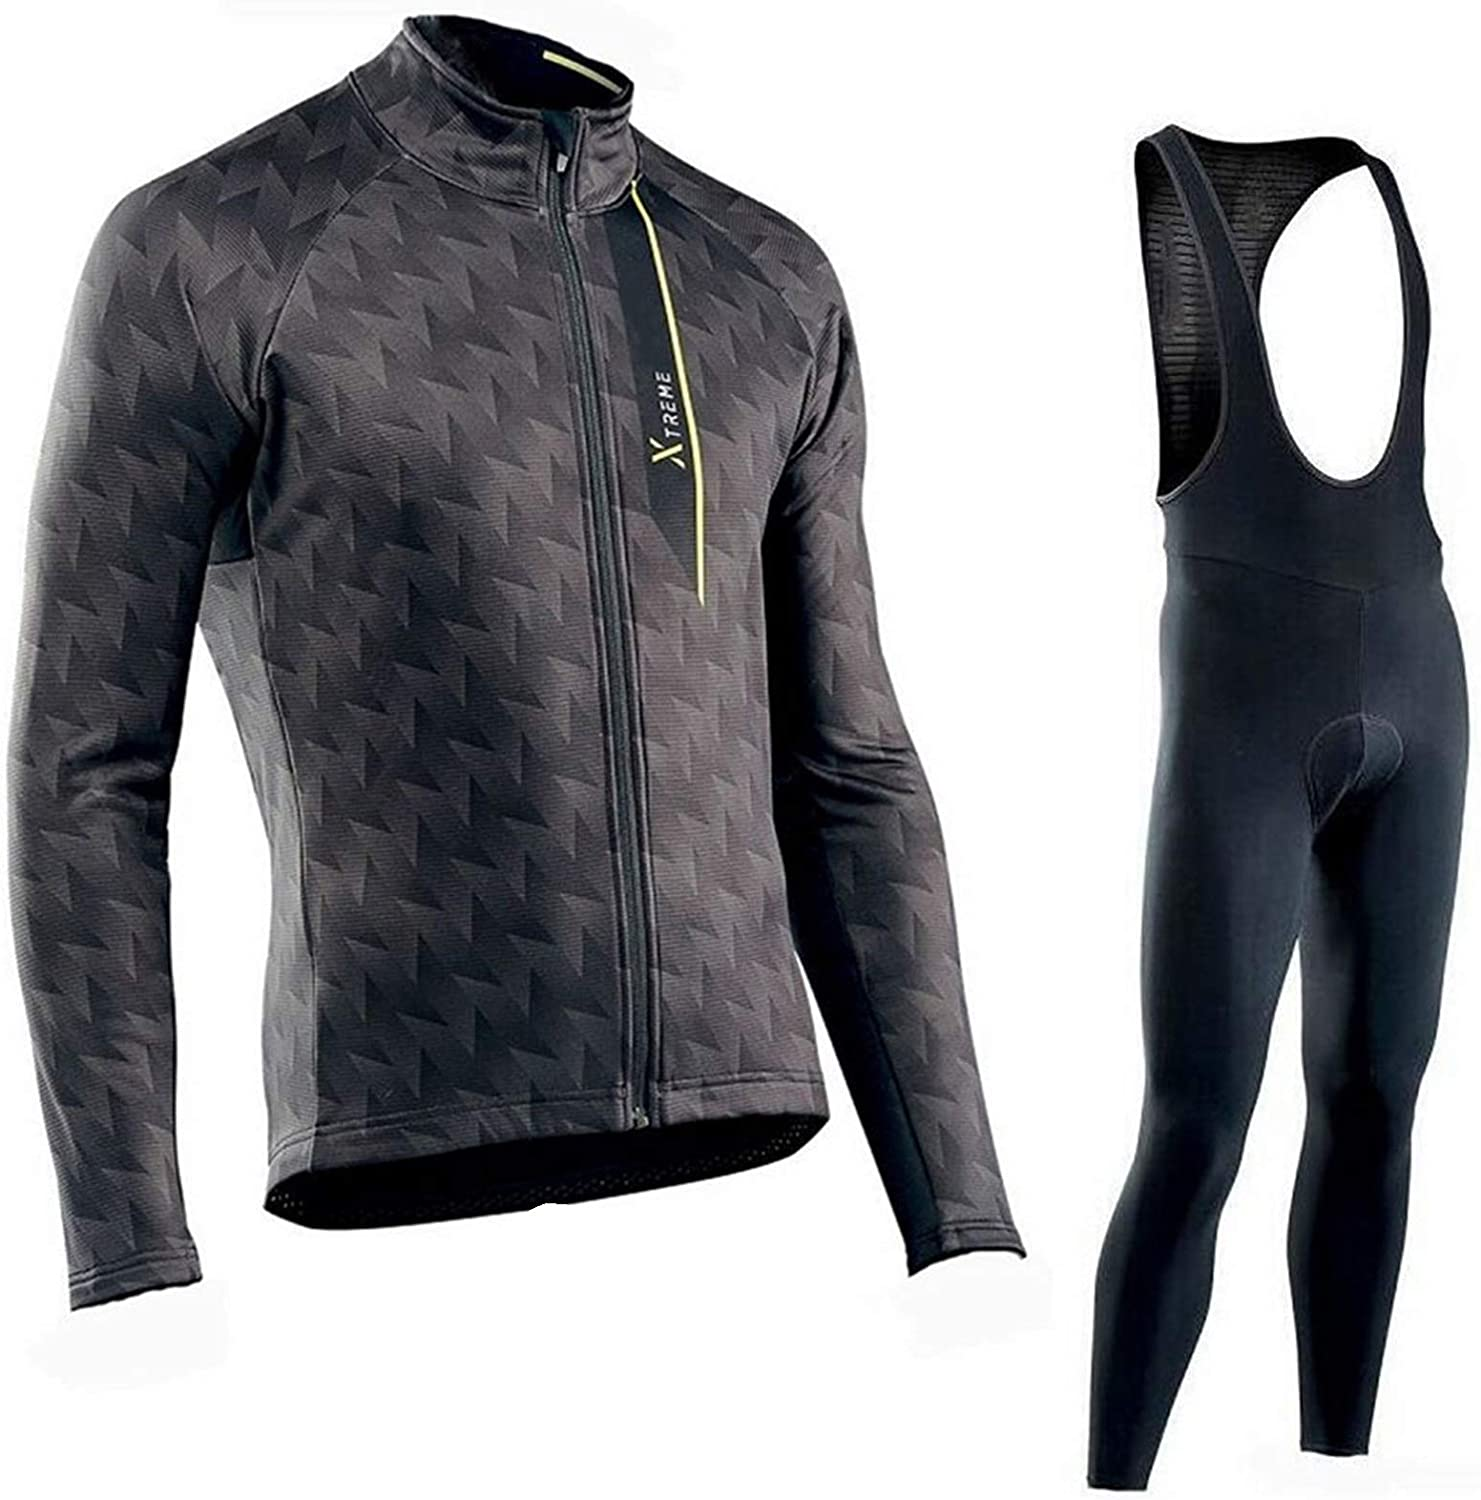 Qi Peng Winter Thermal Great excellence interest Fleece Cycling Men's Set Sle Long Jersey